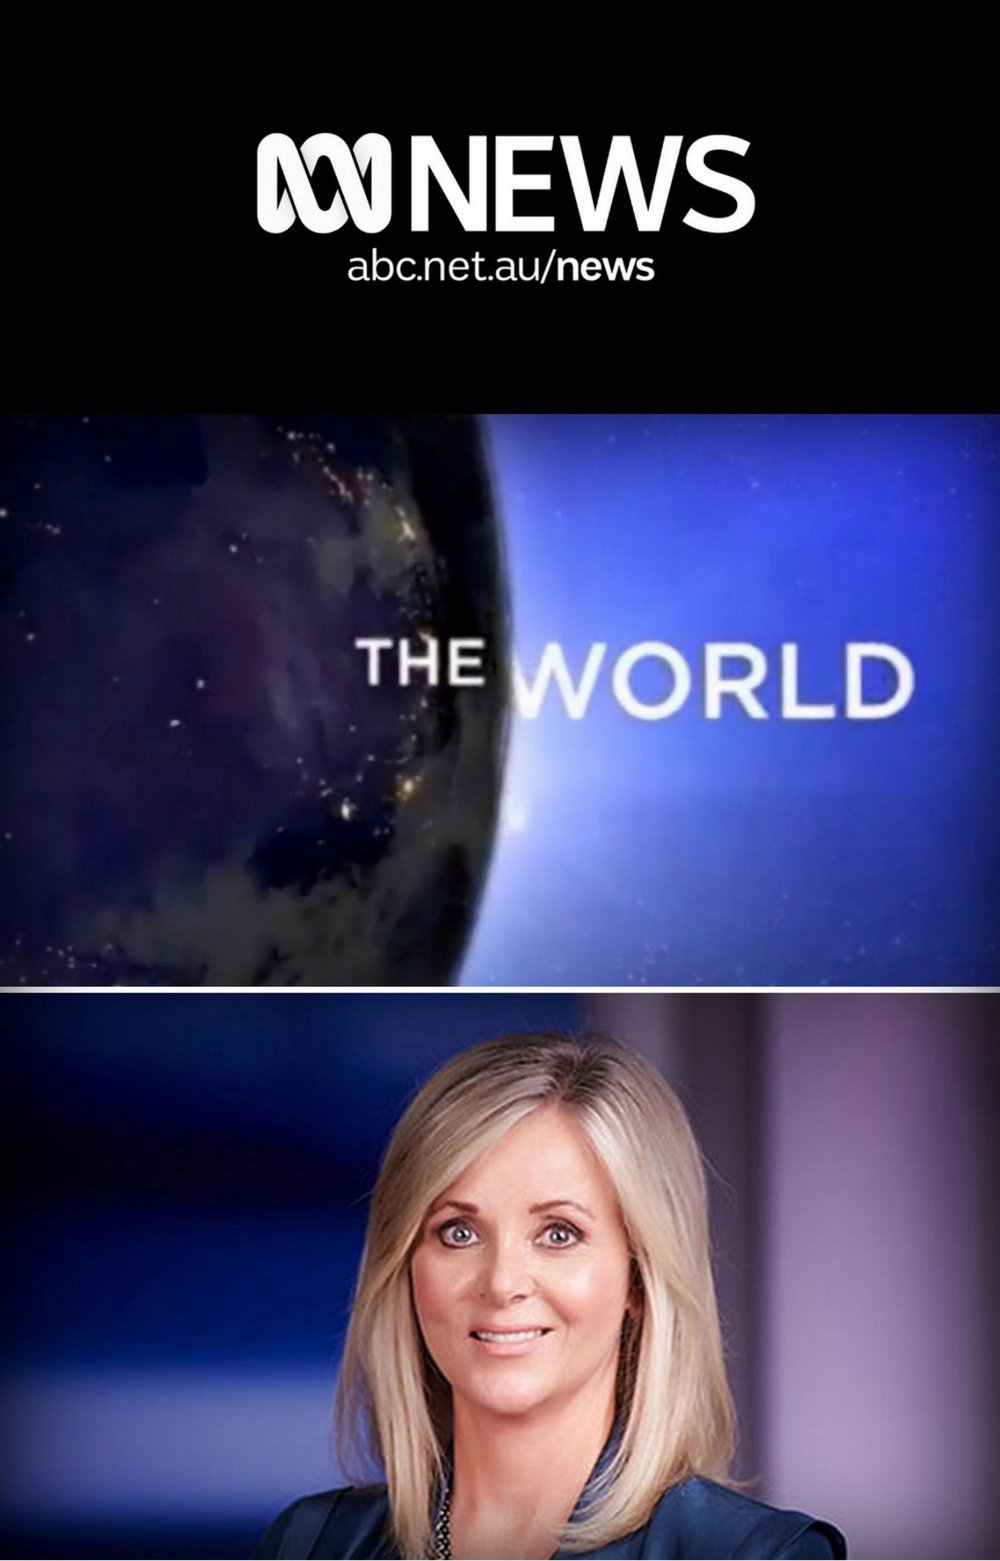 ABC The World - TV INTERVIEW (2017)Kamahl spoke to Beverley O'Connor from ABC Australia's The World about Qatar's position in the ongoing Gulf diplomatic crisis, and the effect it was having on Al Jazeera.